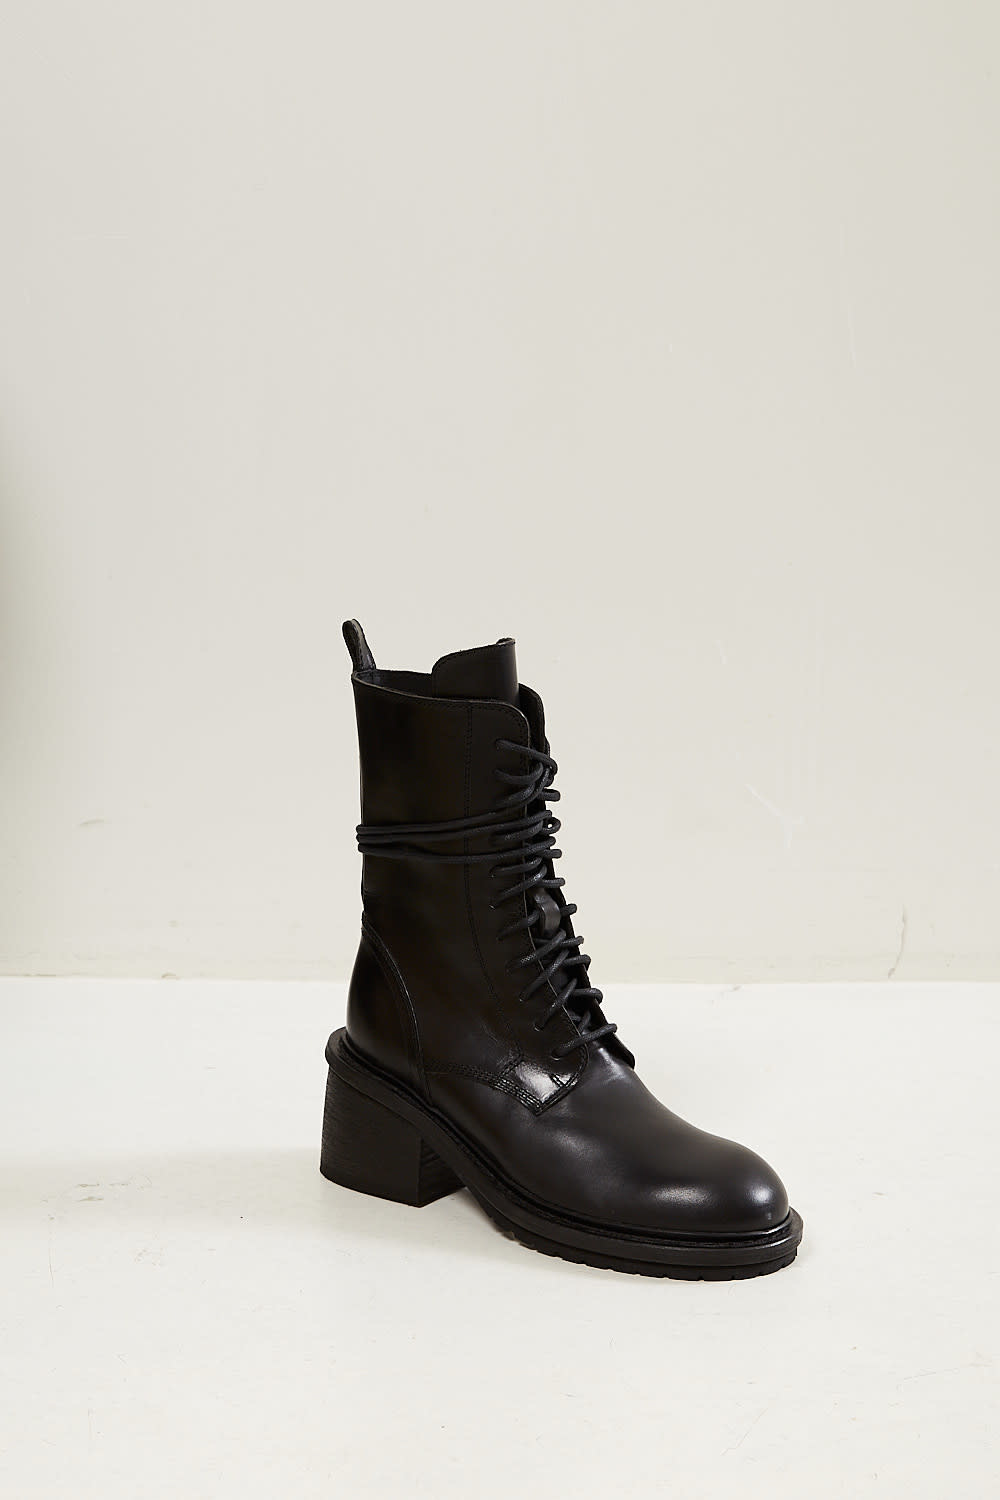 Ann Demeulemeester Tucson lace up leather boots